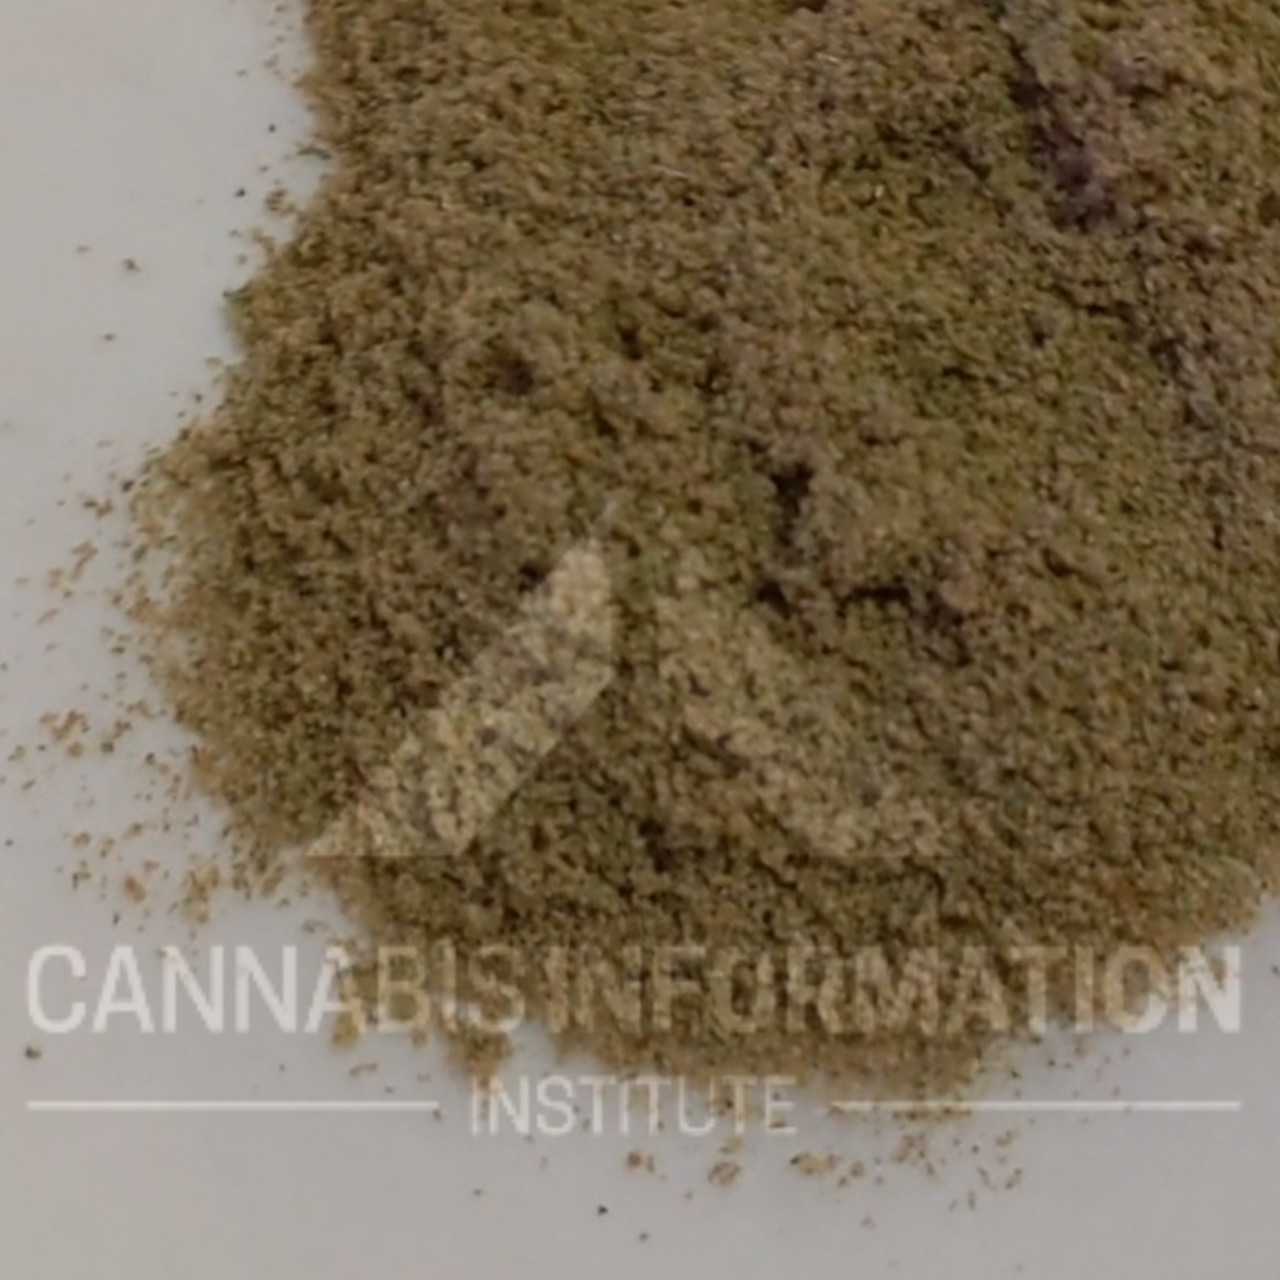 edibles with concentrates, cannabis edibles with kief, how to make kief edibles,how to decarboxylate kief for cannabis edibles, kief decarb, mason jar kief decarb, how to decarboxylate cannabis how to decarb for edibles, do you have to decarb cannabis for oil, cannabis oil, decarboxylation cannabis, decarboxylation recipe, decarboxylation convection oven, cannabinoid decarboxylation, decarboxylation kief, decarboxylation without heat, lemon juice decarboxylation, decarboxylation after extraction, decarboxylate before making oil, cannabis edibles